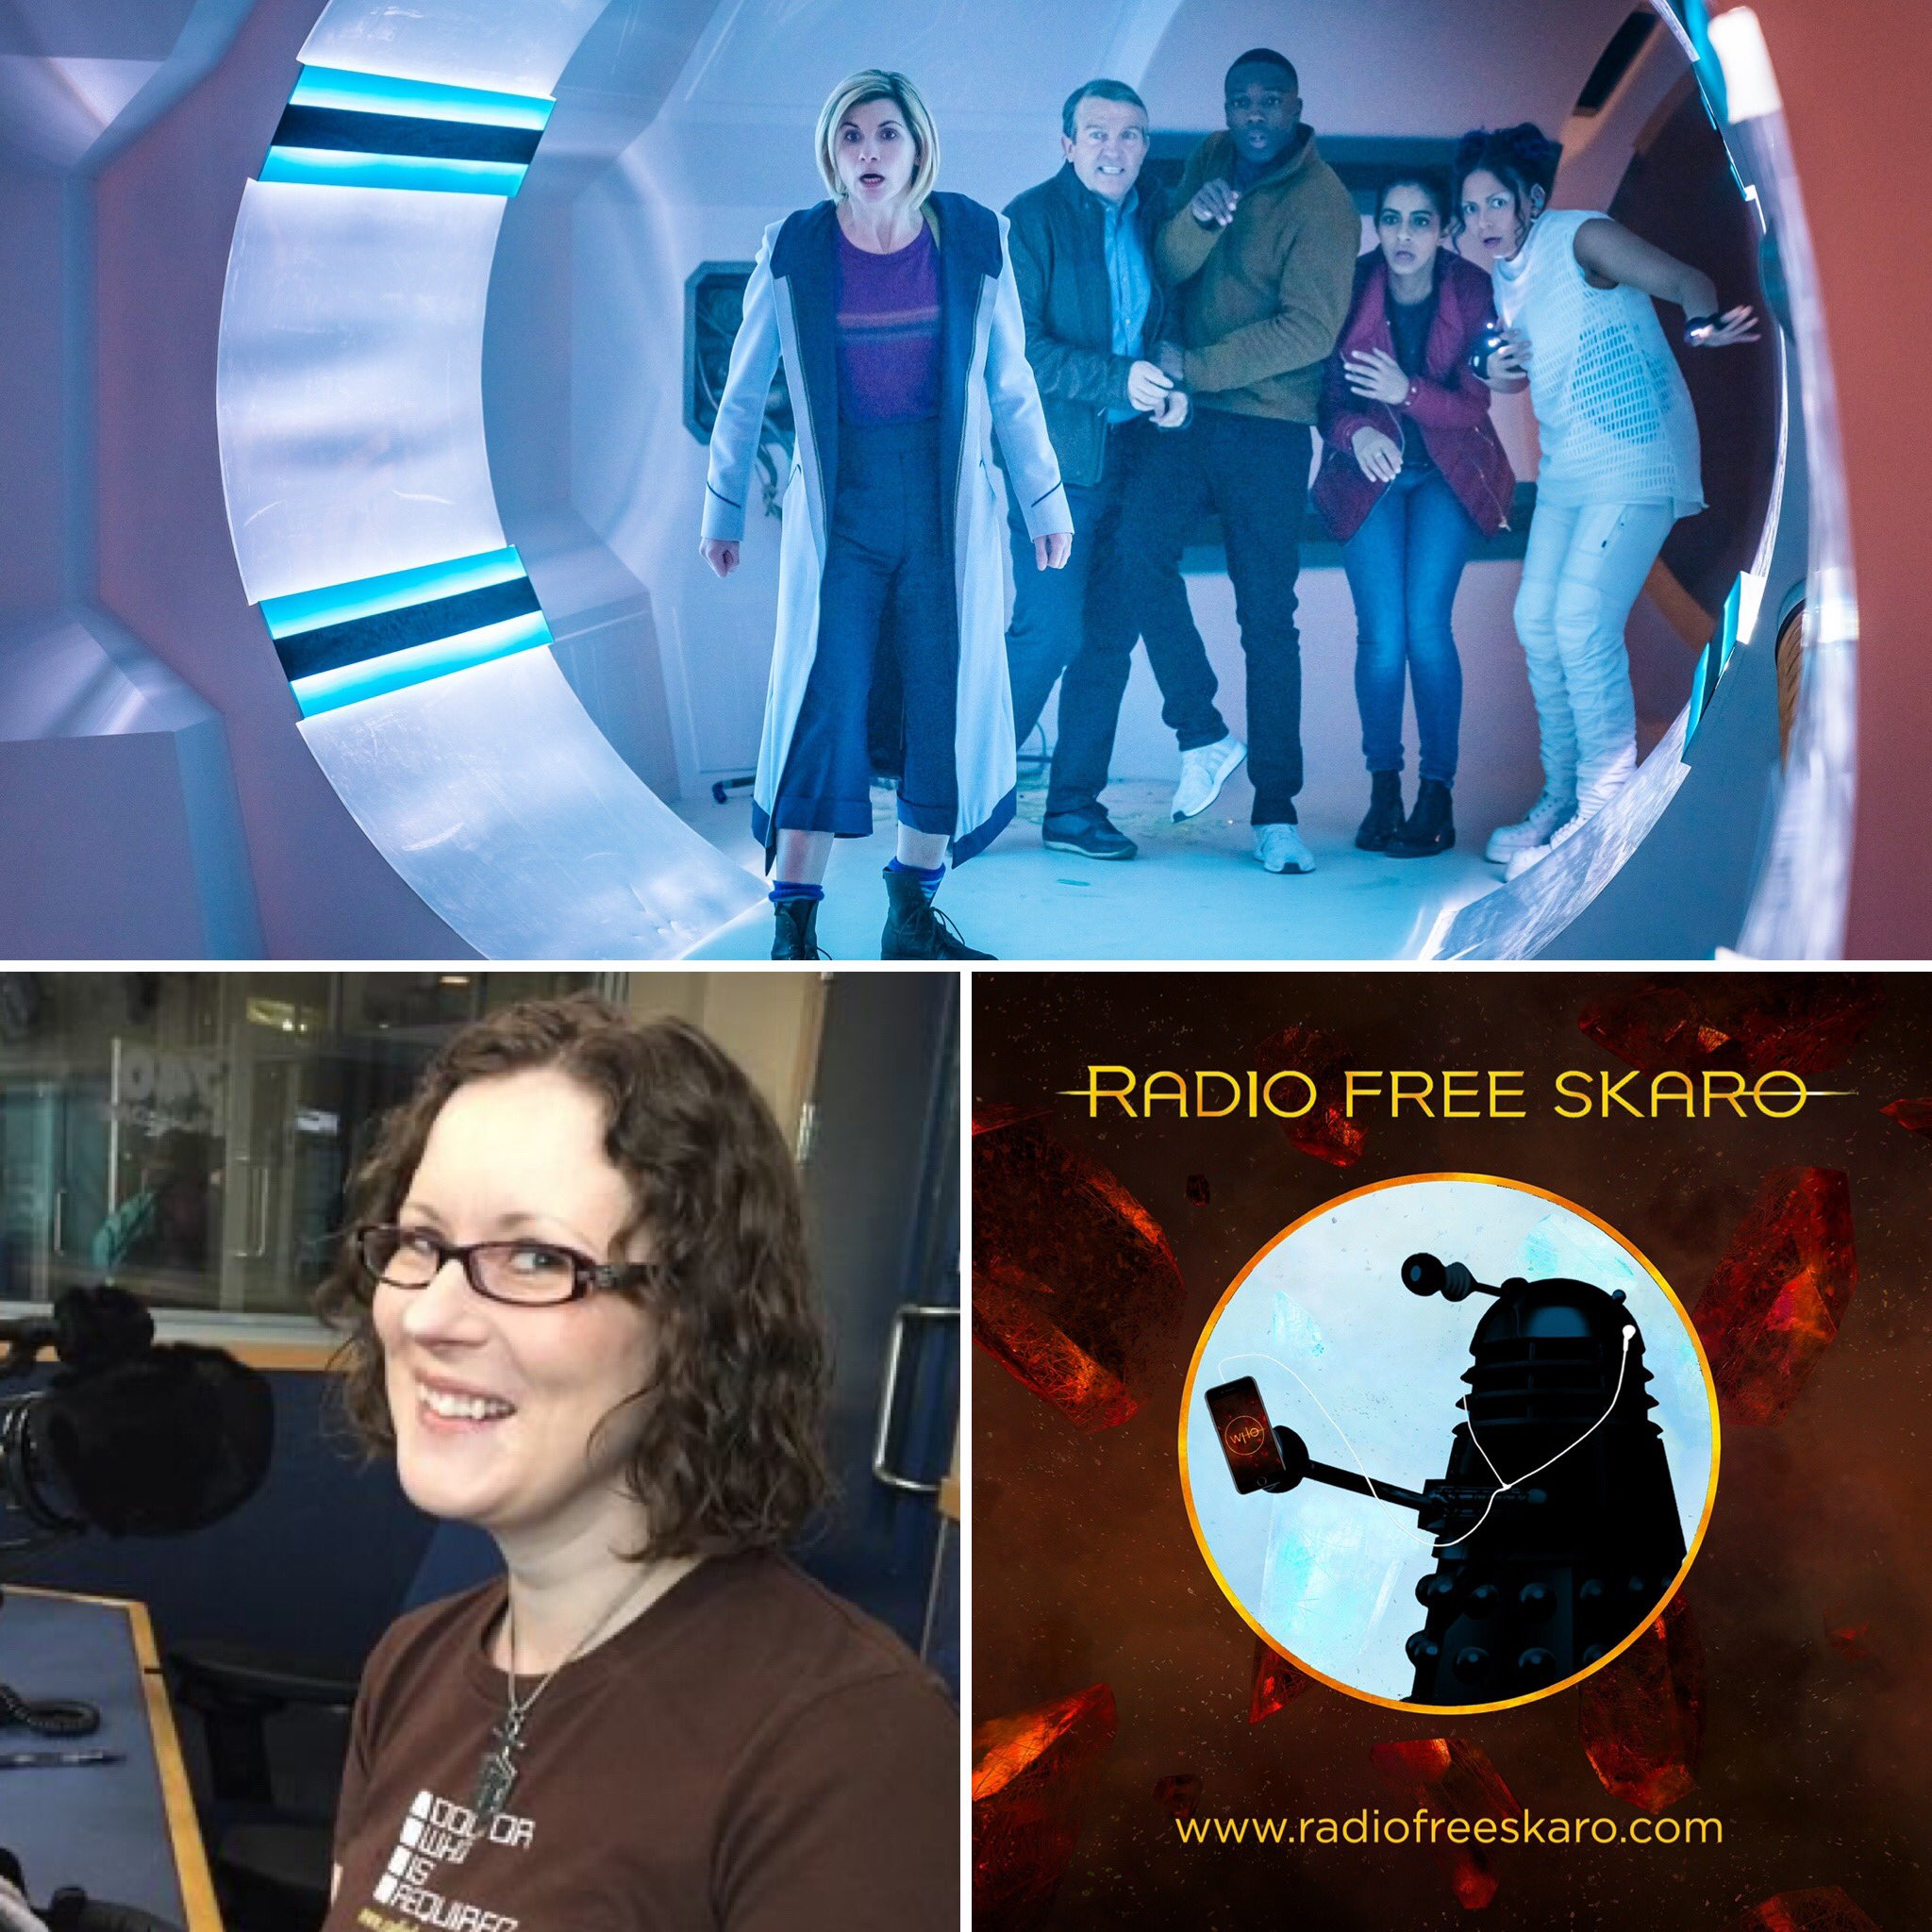 Radio Free Skaro On Twitter Sunday On Rfs 708 Our Doctorwho Series 11 Commentaries Continue With The Tsuranga Conundrum With Guest Hollygodarkly Https T Co Iubpu2k3k1